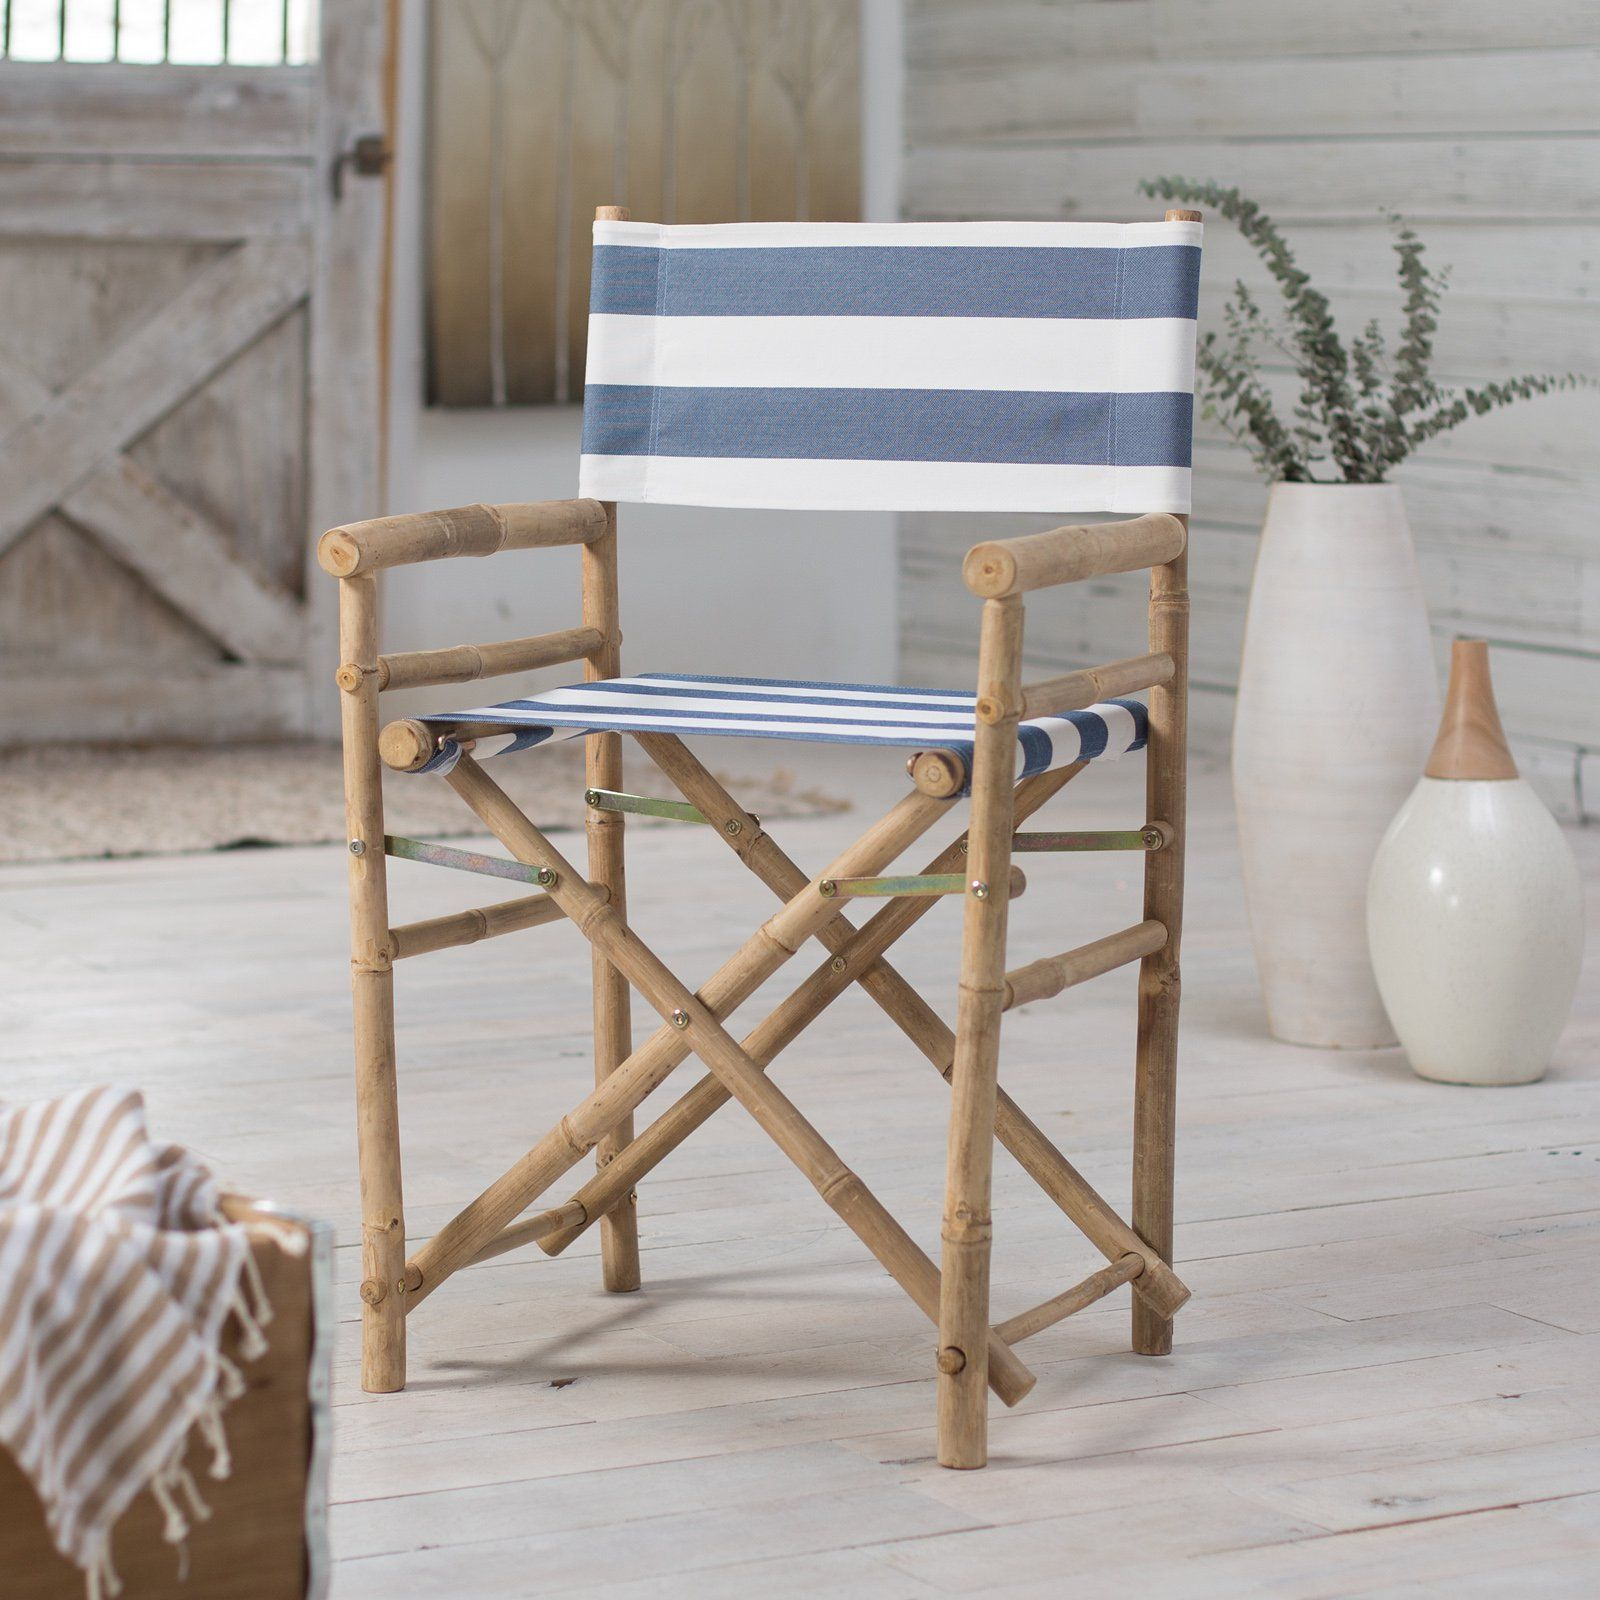 Striped Directors Chairs Ethan Allen Rocking Chair Bamboo 18 Inch Standard Height With Stripe Cover Set Of 2 Ch 007 0 22